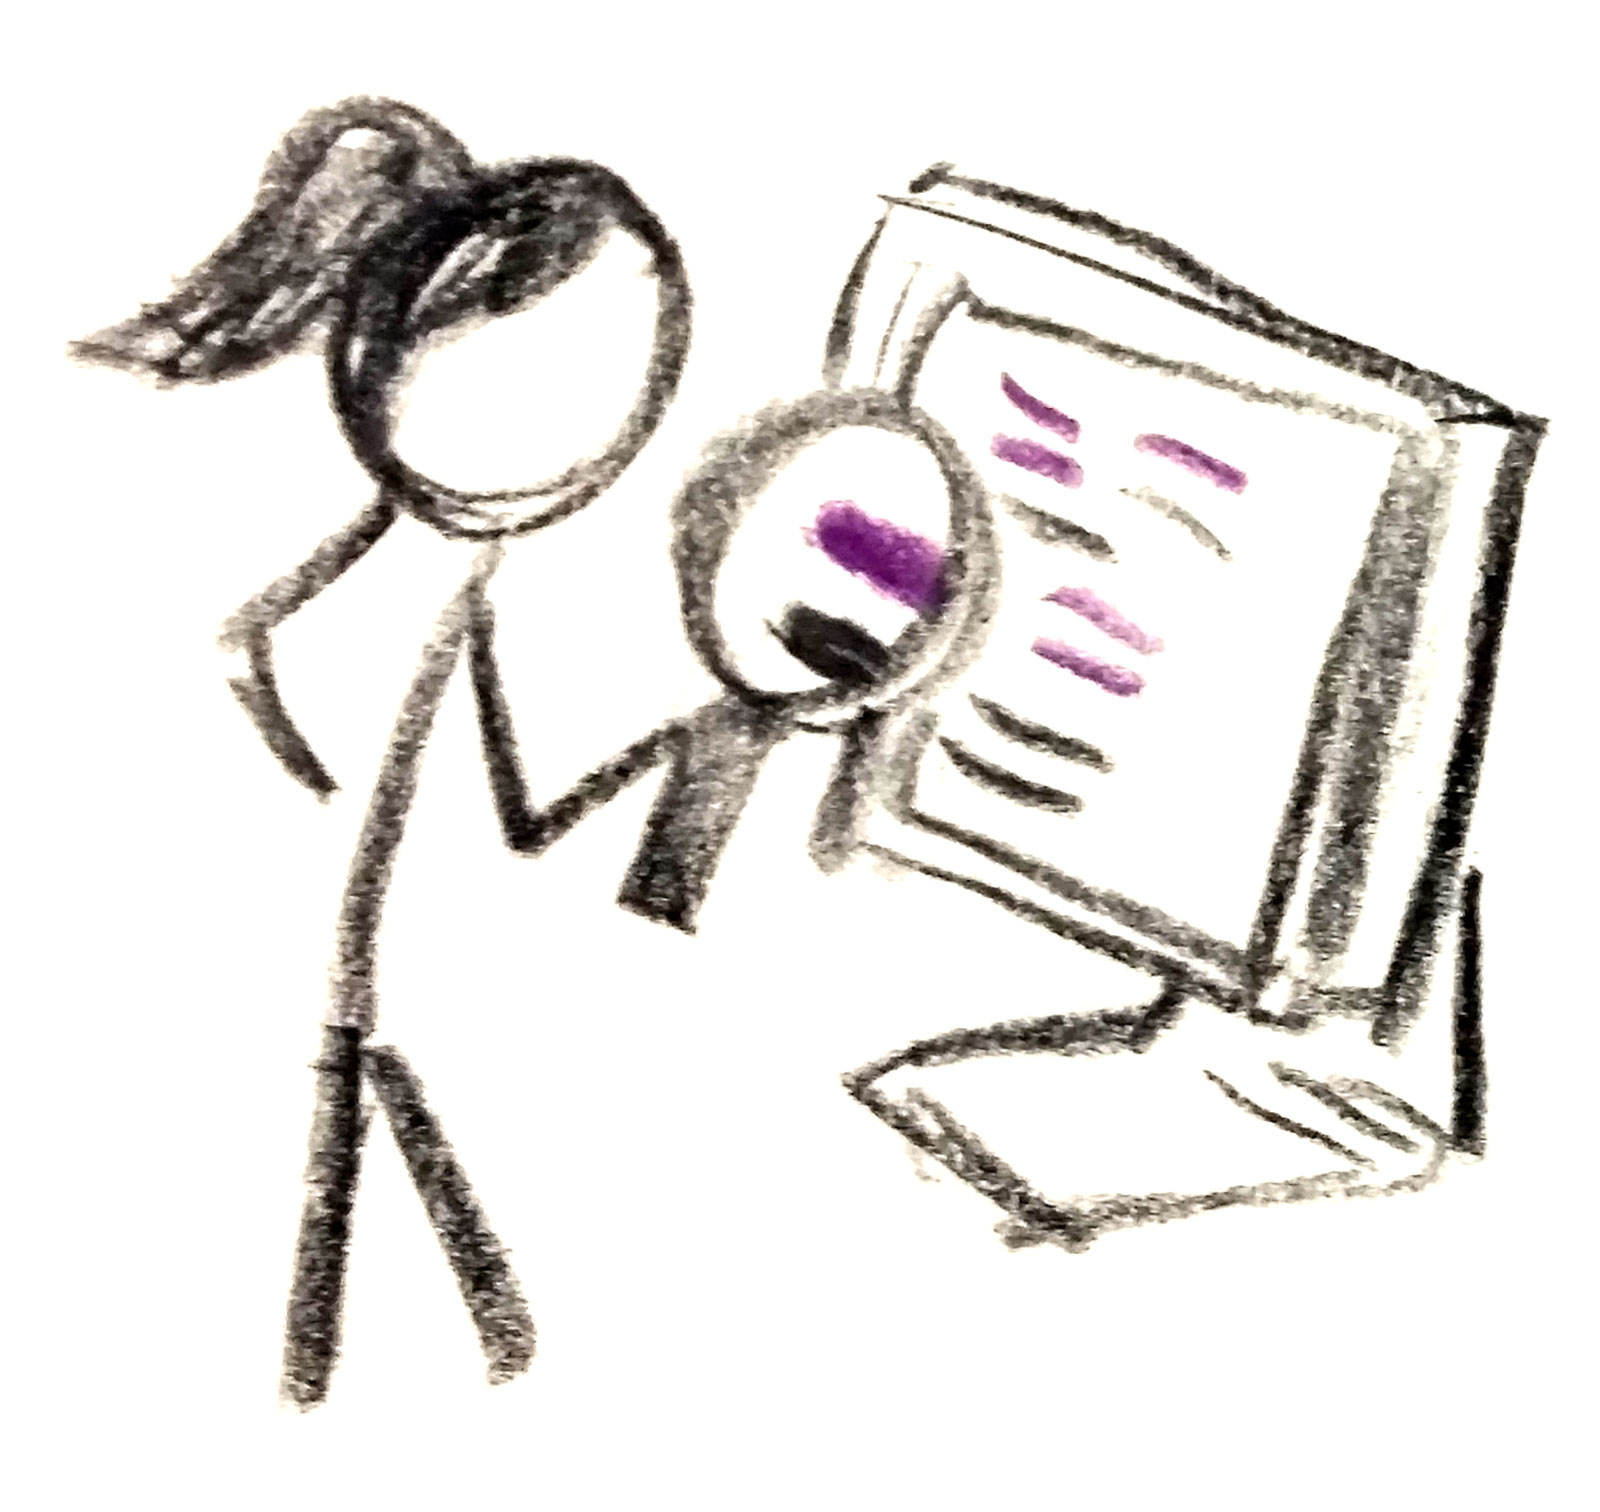 Stick figure looking at a website with a magnifying glass.